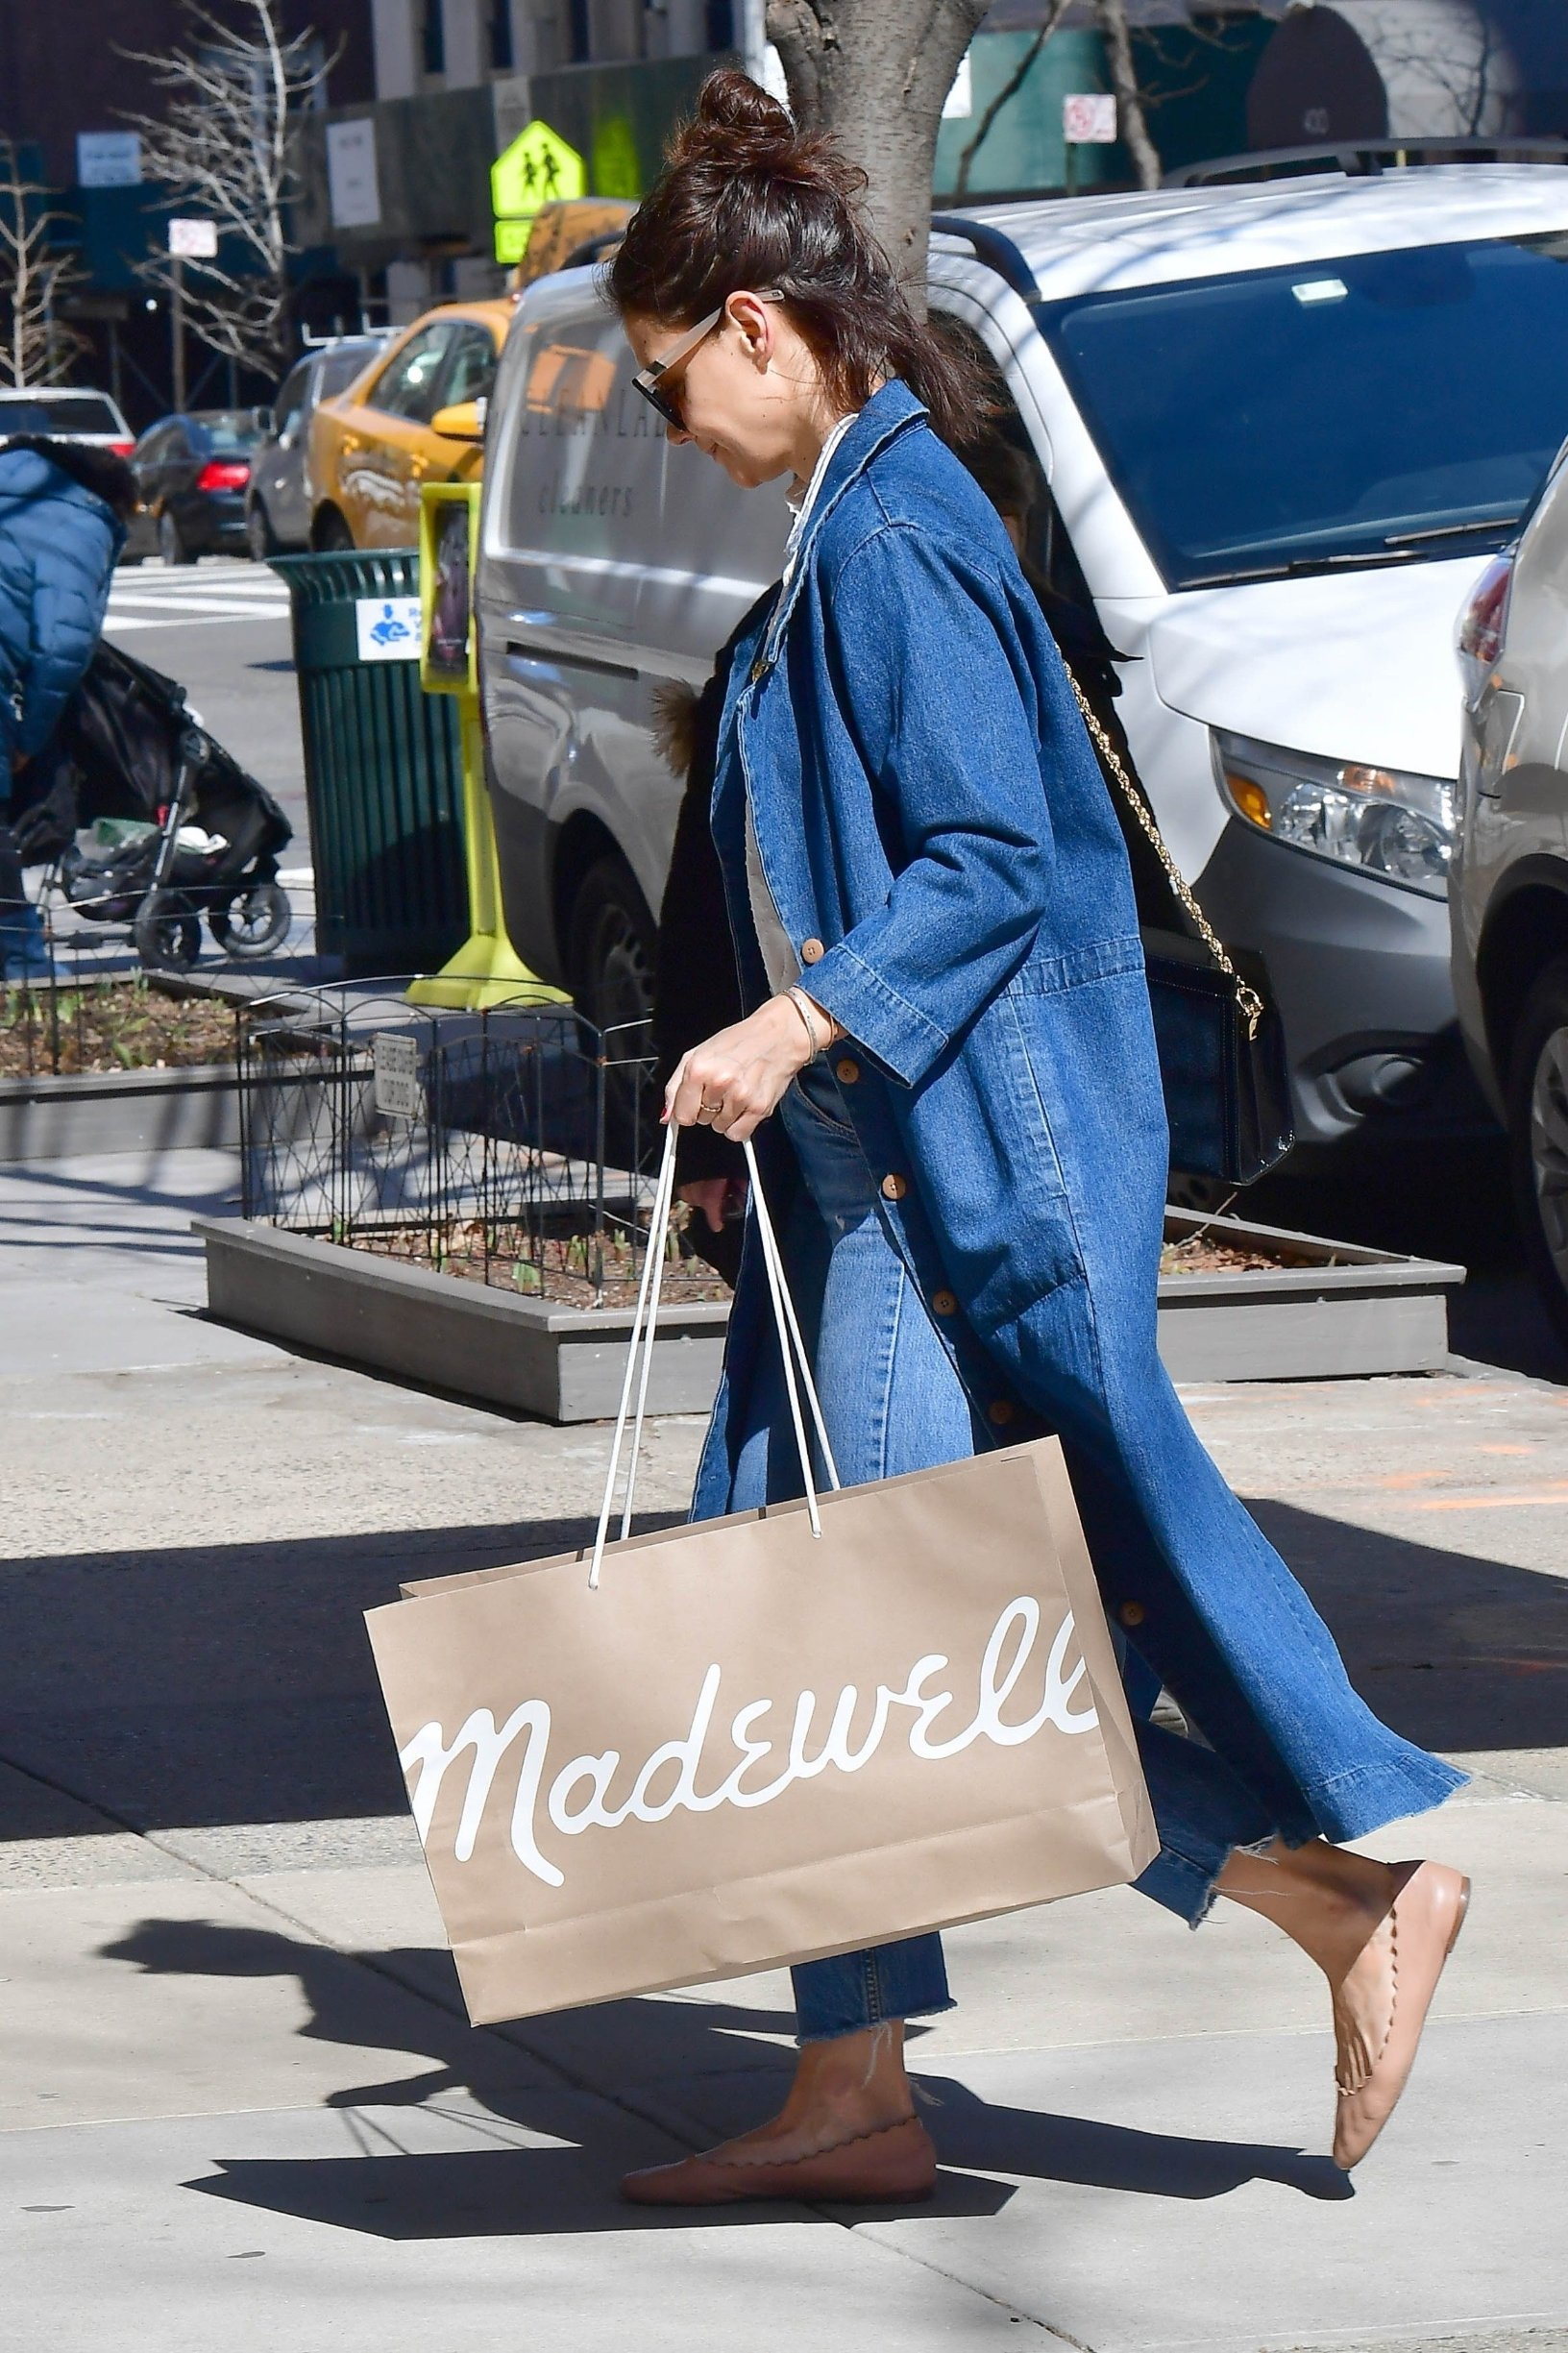 ** RIGHTS: WORLDWIDE EXCEPT IN FRANCE, GERMANY, POLAND ** New York, NY  - Actress Katie Holmes feeling blue wearing shades of blue with her ensemble today as she endulges into some retail therapy at Madewell.  With rumors swirling that she and Jamie Foxx have split, perhaps Katie was looking to cheer herself up with a shopping spree.  Pictured: Katie Holmes  BACKGRID USA 14 MARCH 2019, Image: 419475749, License: Rights-managed, Restrictions: , Model Release: no, Credit line: Profimedia, Backgrid USA